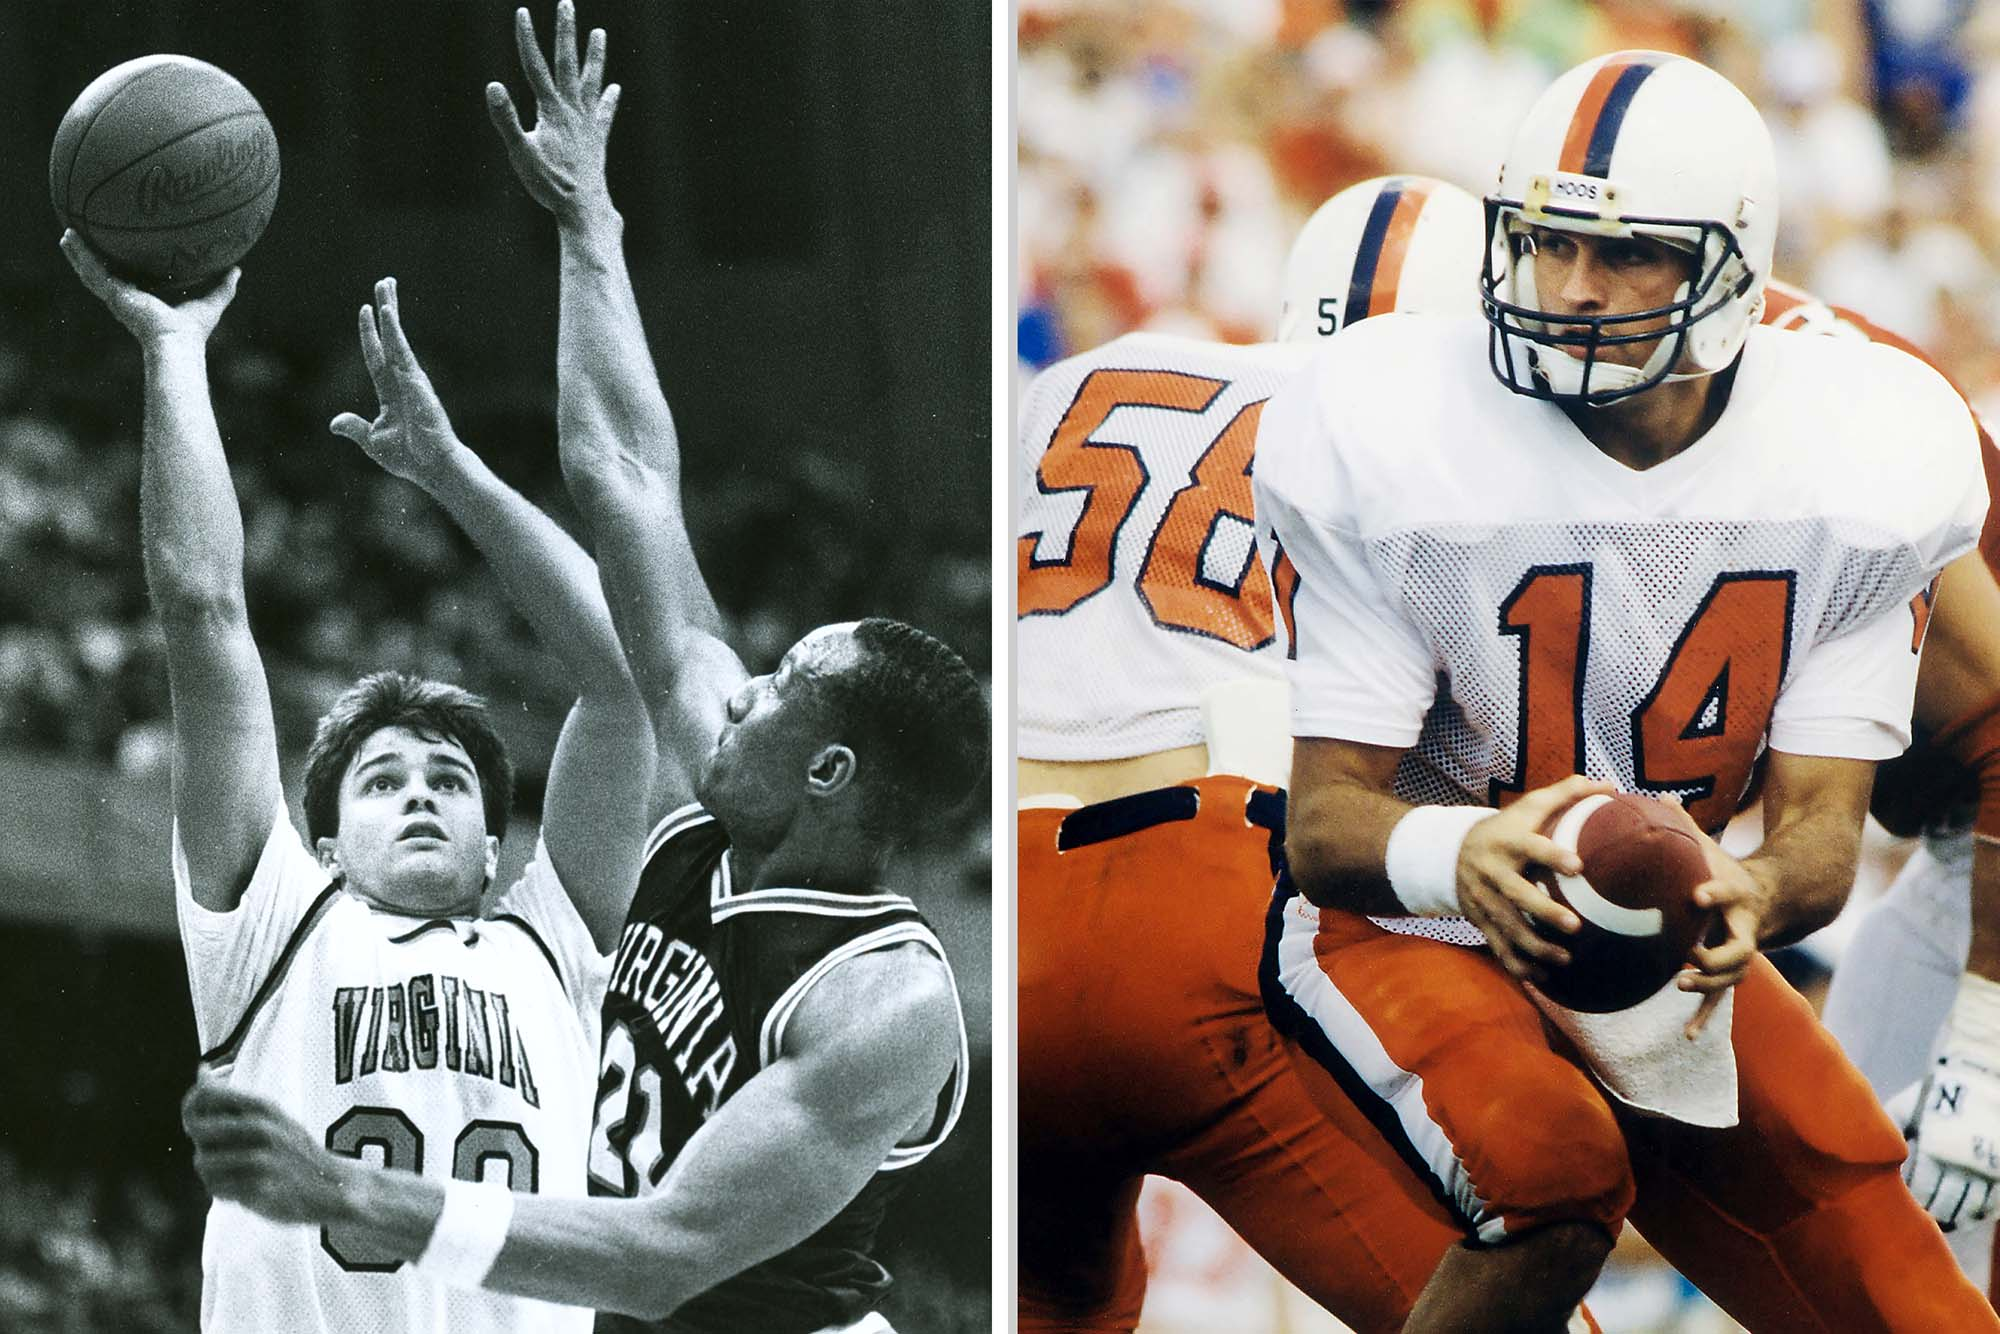 Matt Blundin played both basketball and football during his time at UVA. (Photos courtesy UVA Athletics)